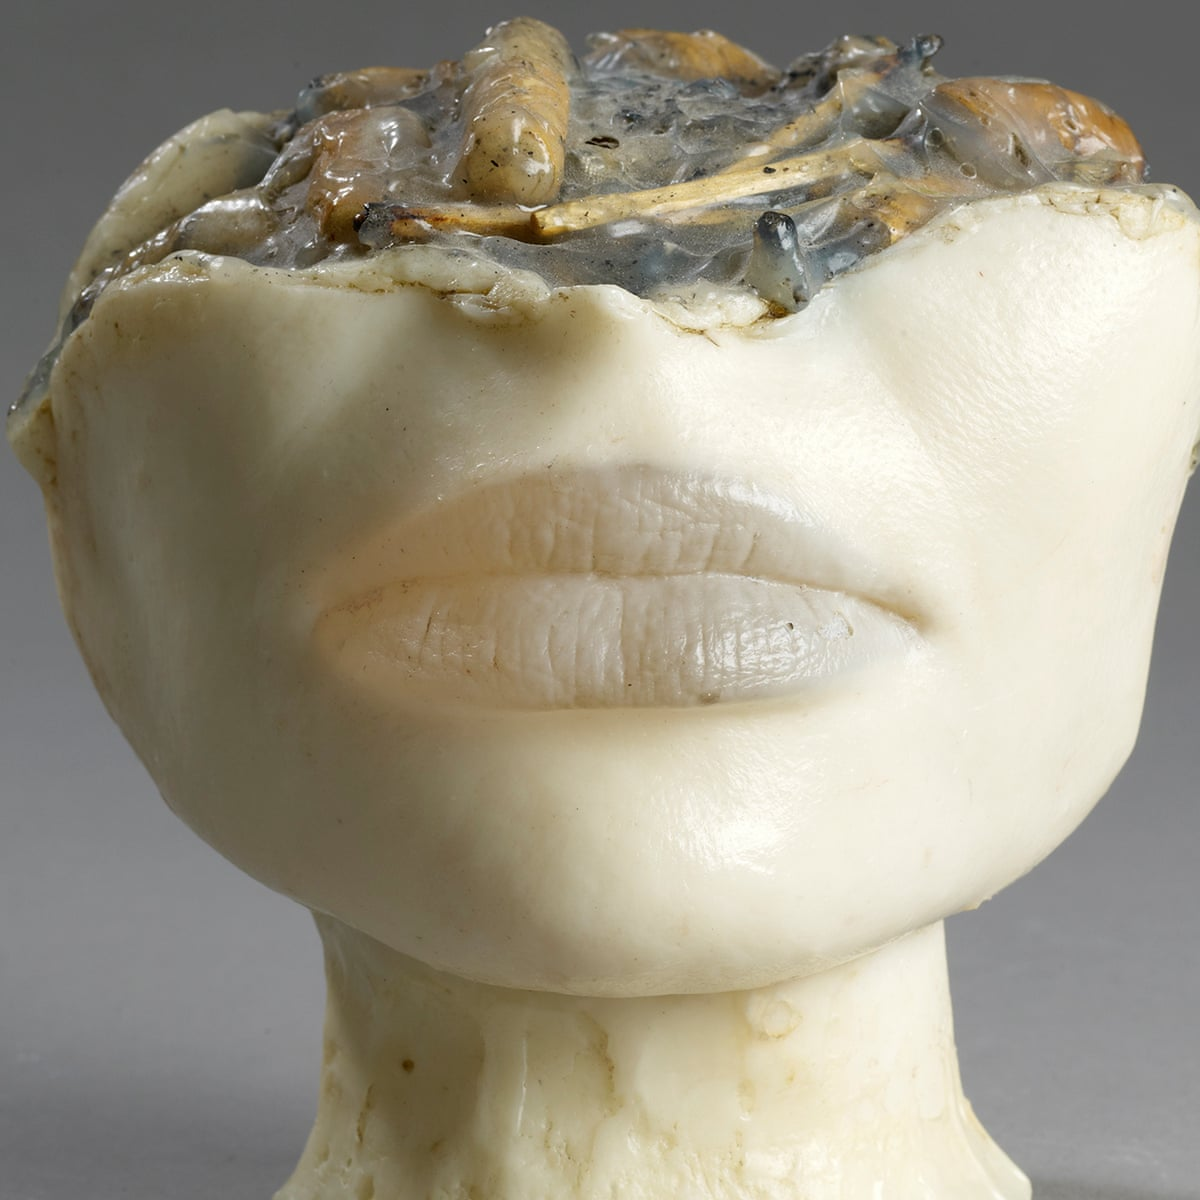 Head Ashtrays And Pin Up Body Parts Alina Szapocznikow Human Landscapes Review Art The Guardian